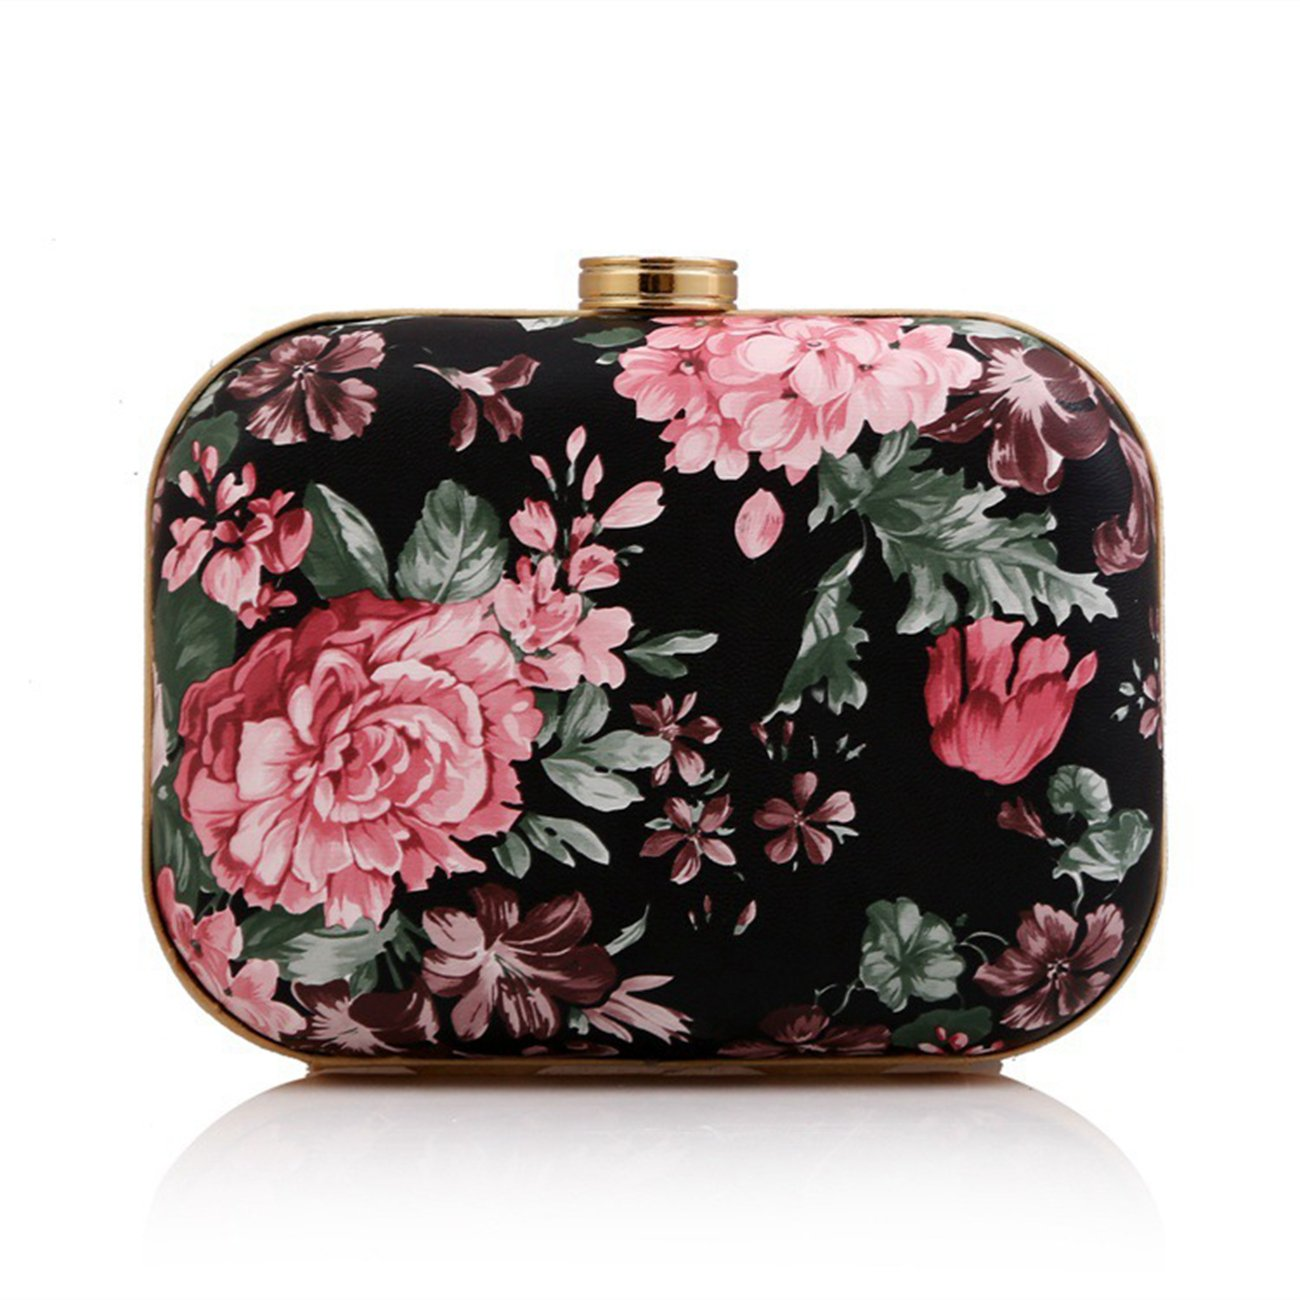 Fit & Wit Faux Leather Evening Cocktail Wedding Party Handbag Clutch Purse Shoulder Bag - Peony Flower - Pink by Fit & Wit